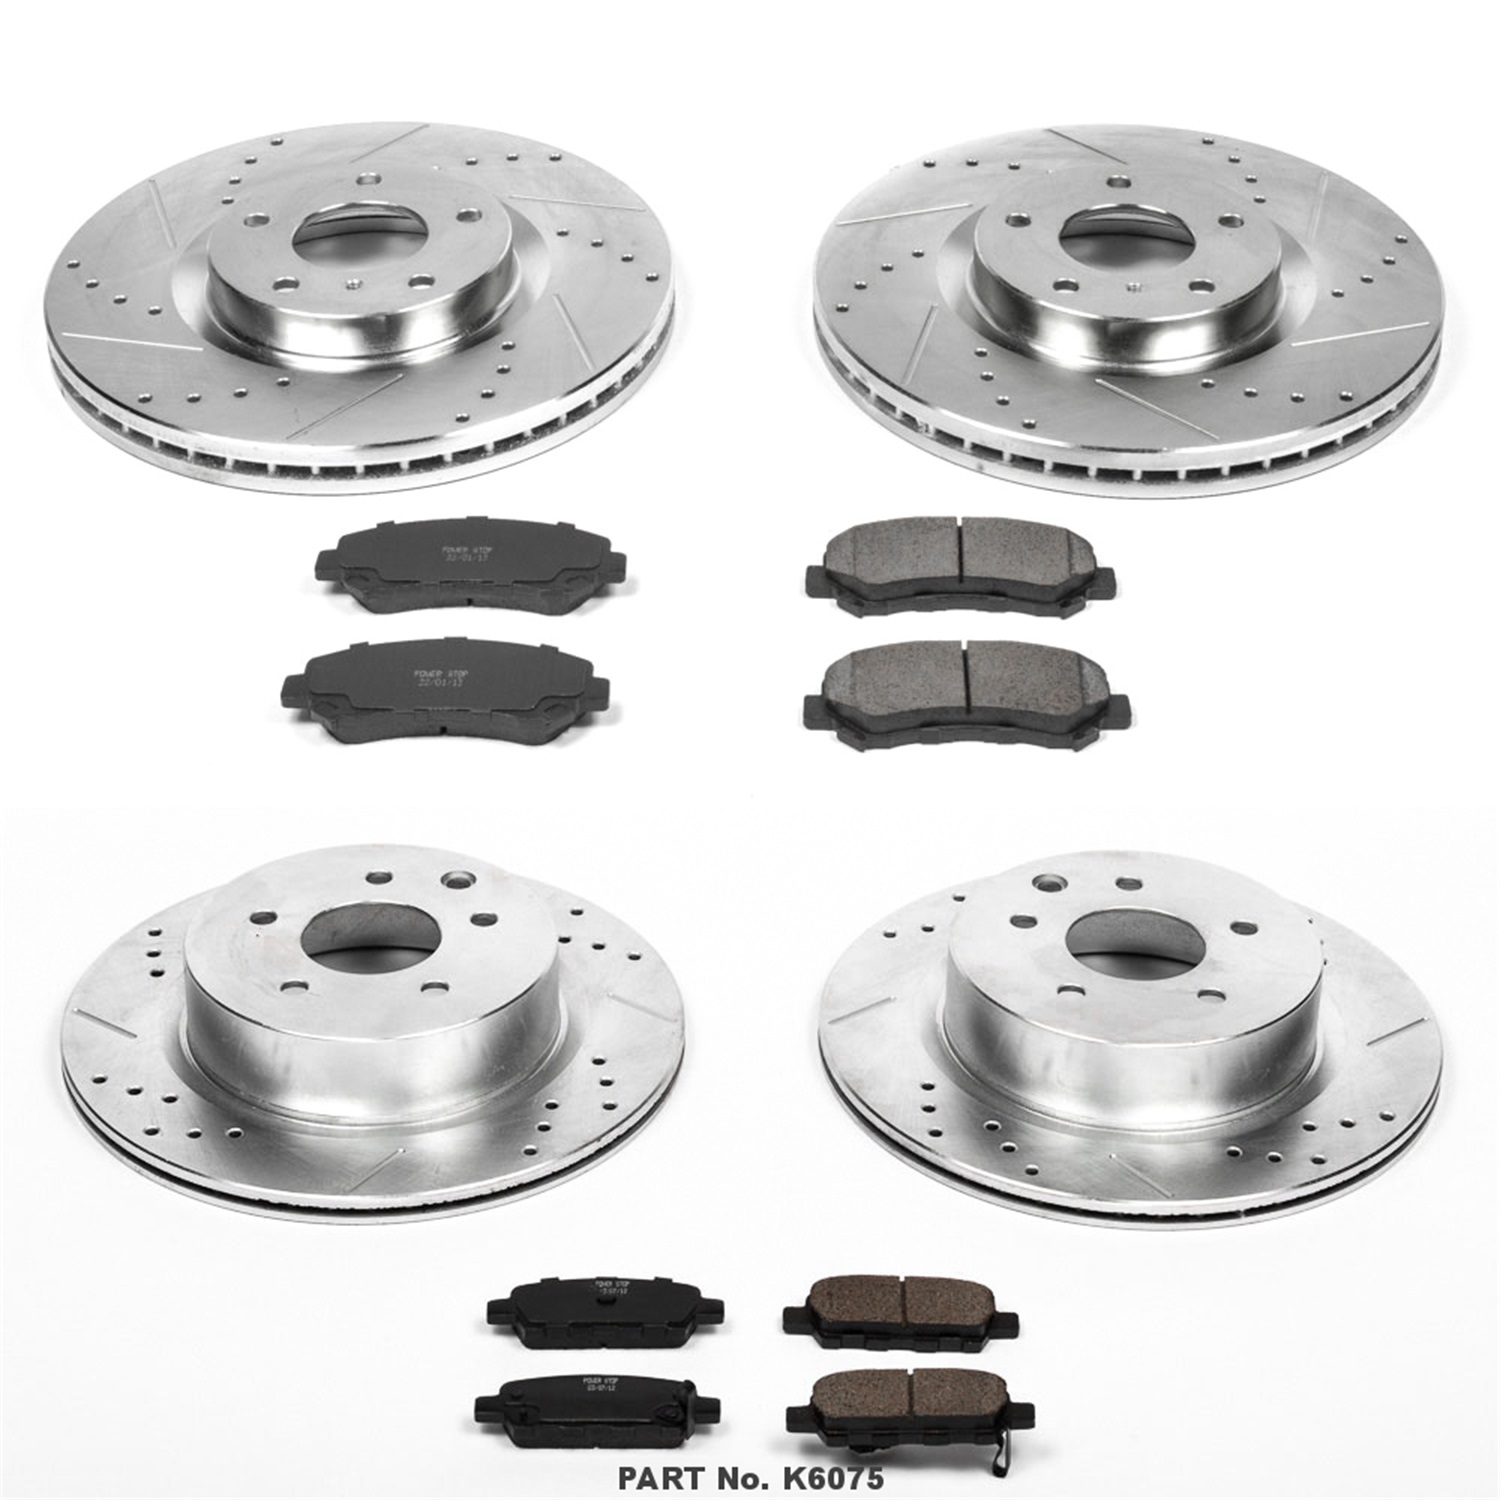 1 CLICK BRAKE KIT W/HARDWARE